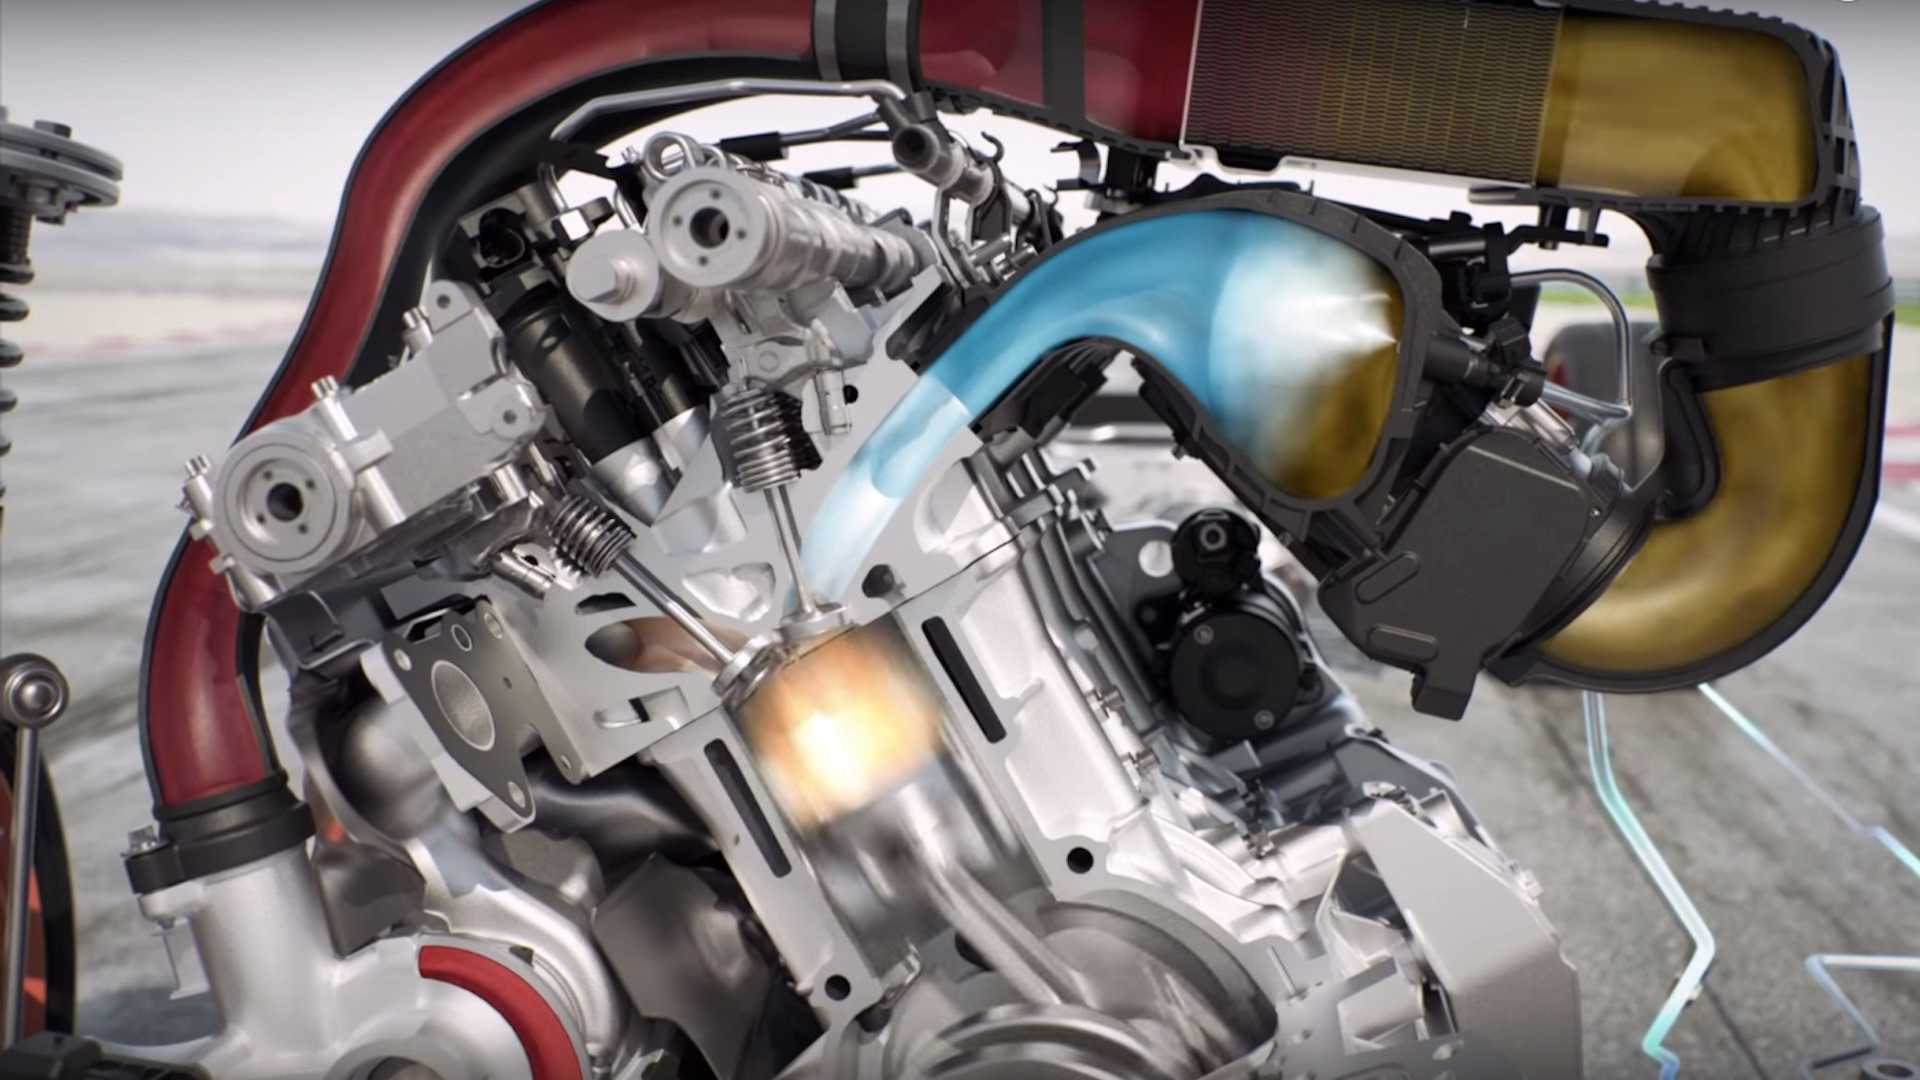 BMW Miracle: See How Engineers Turned Water Into 50 HP